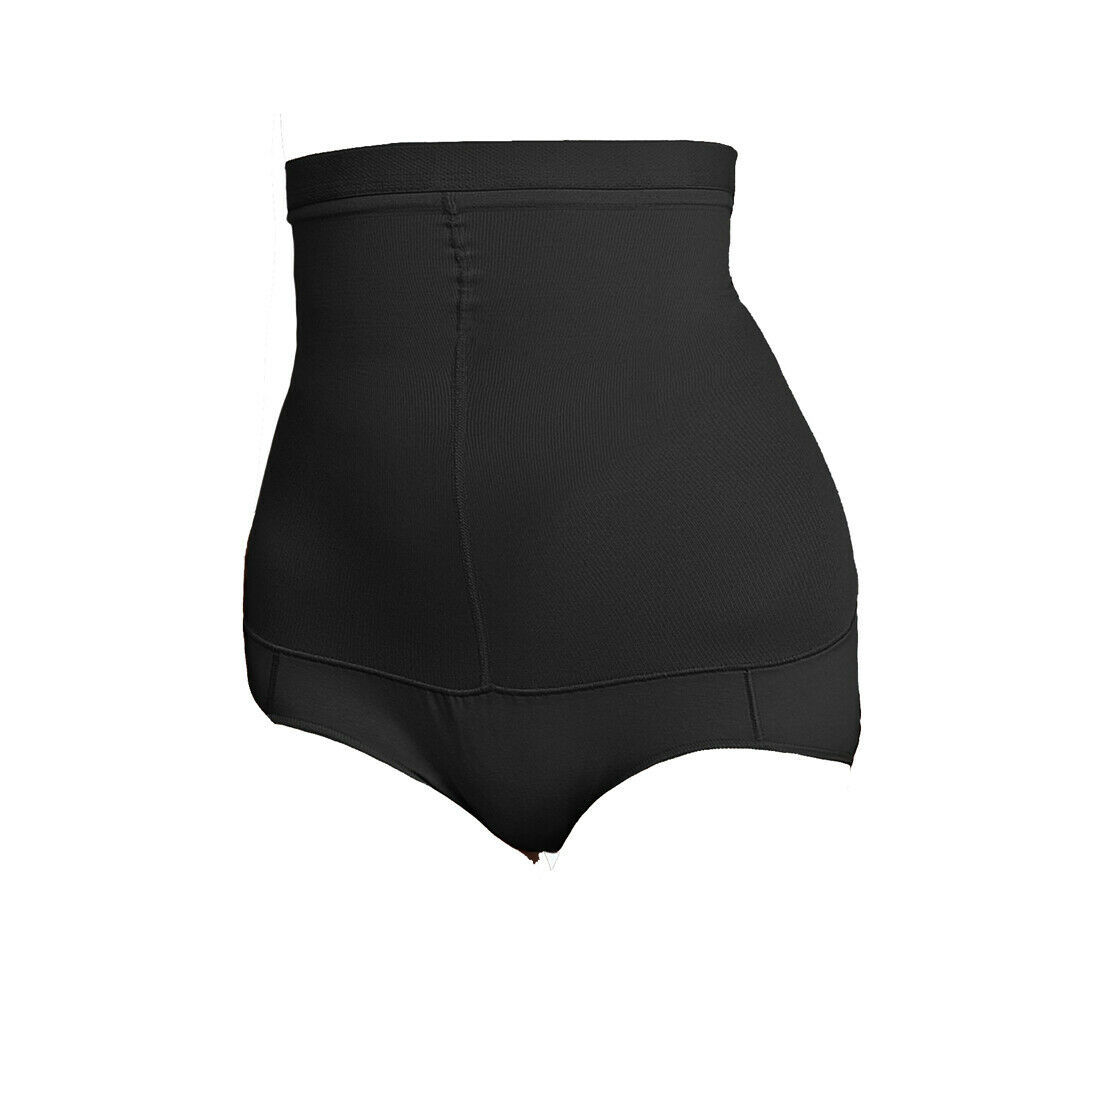 "Primary image for SPANX Super Control Higher Power Brief High Waisted Panty 234 - 4'10"" to 5'5"""